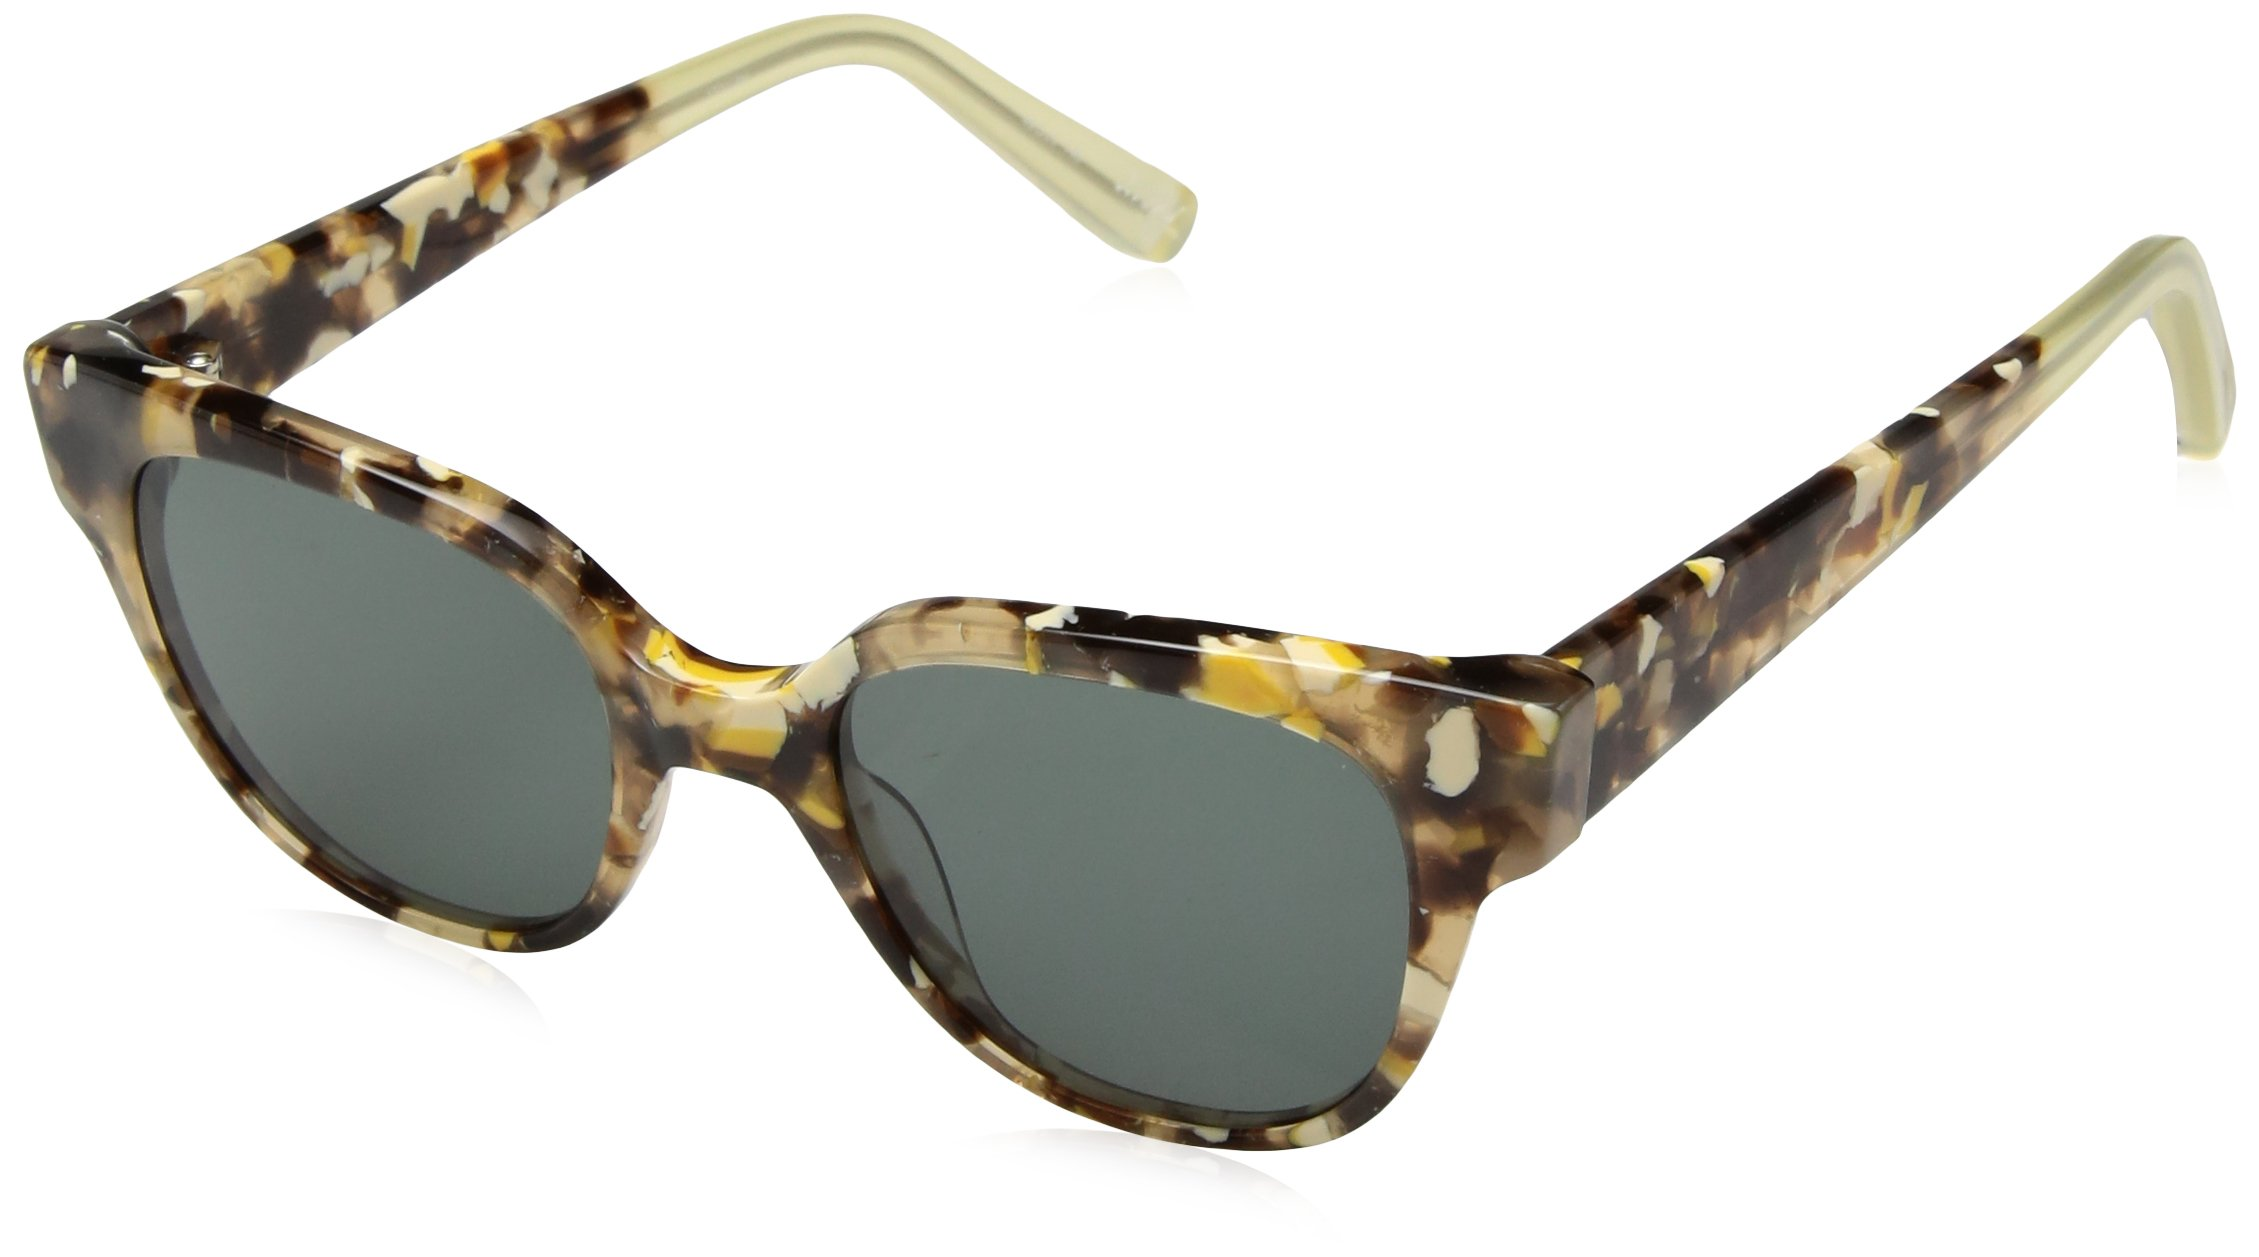 Elizabeth and James Women's Avory Wayfarer Sunglasses, Amber Tortoise, 49 mm by Elizabeth and James